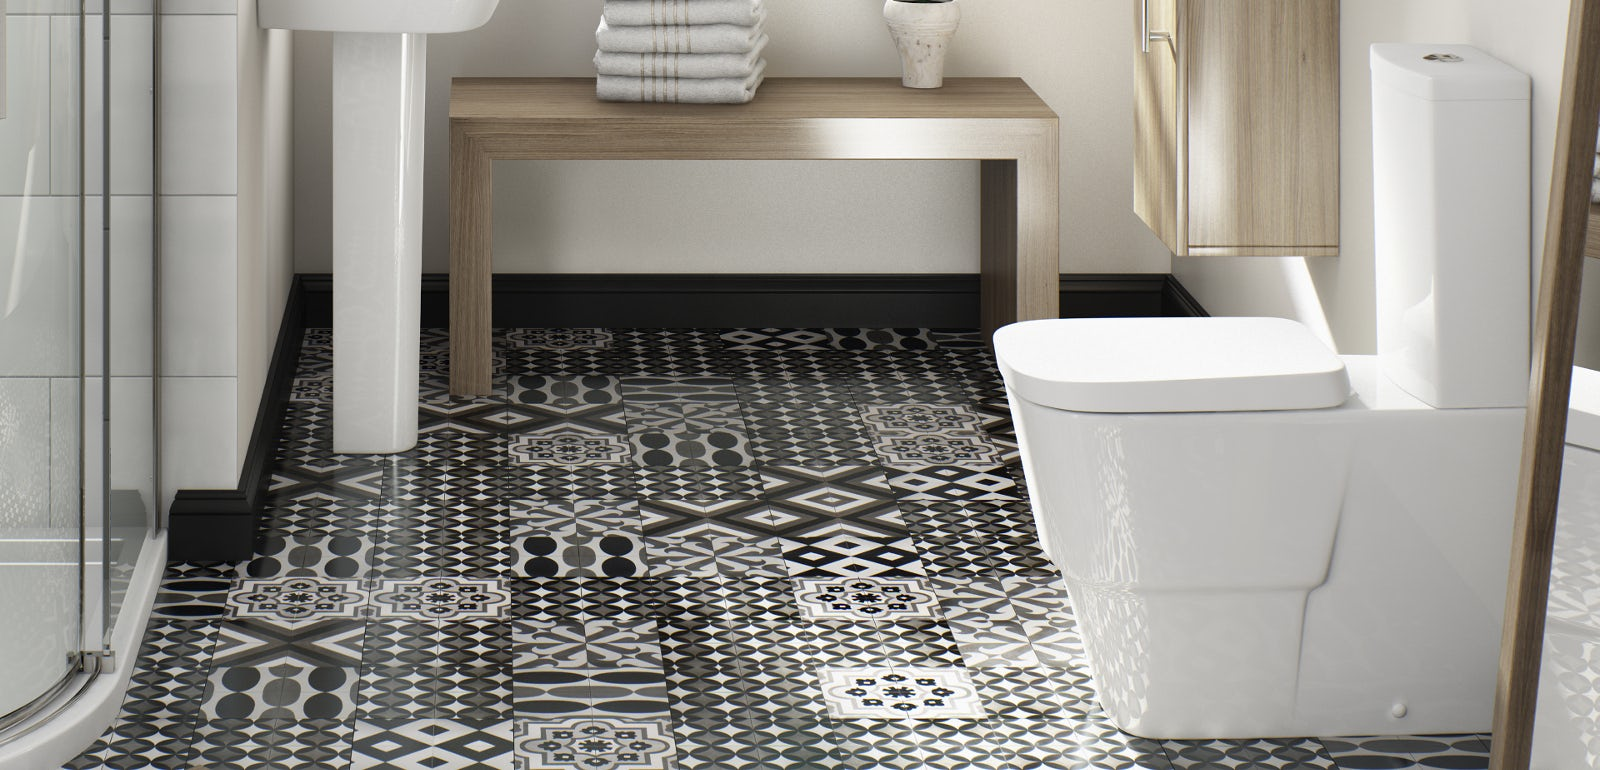 What to choose: a floor toilet or a suspended toilet with installation